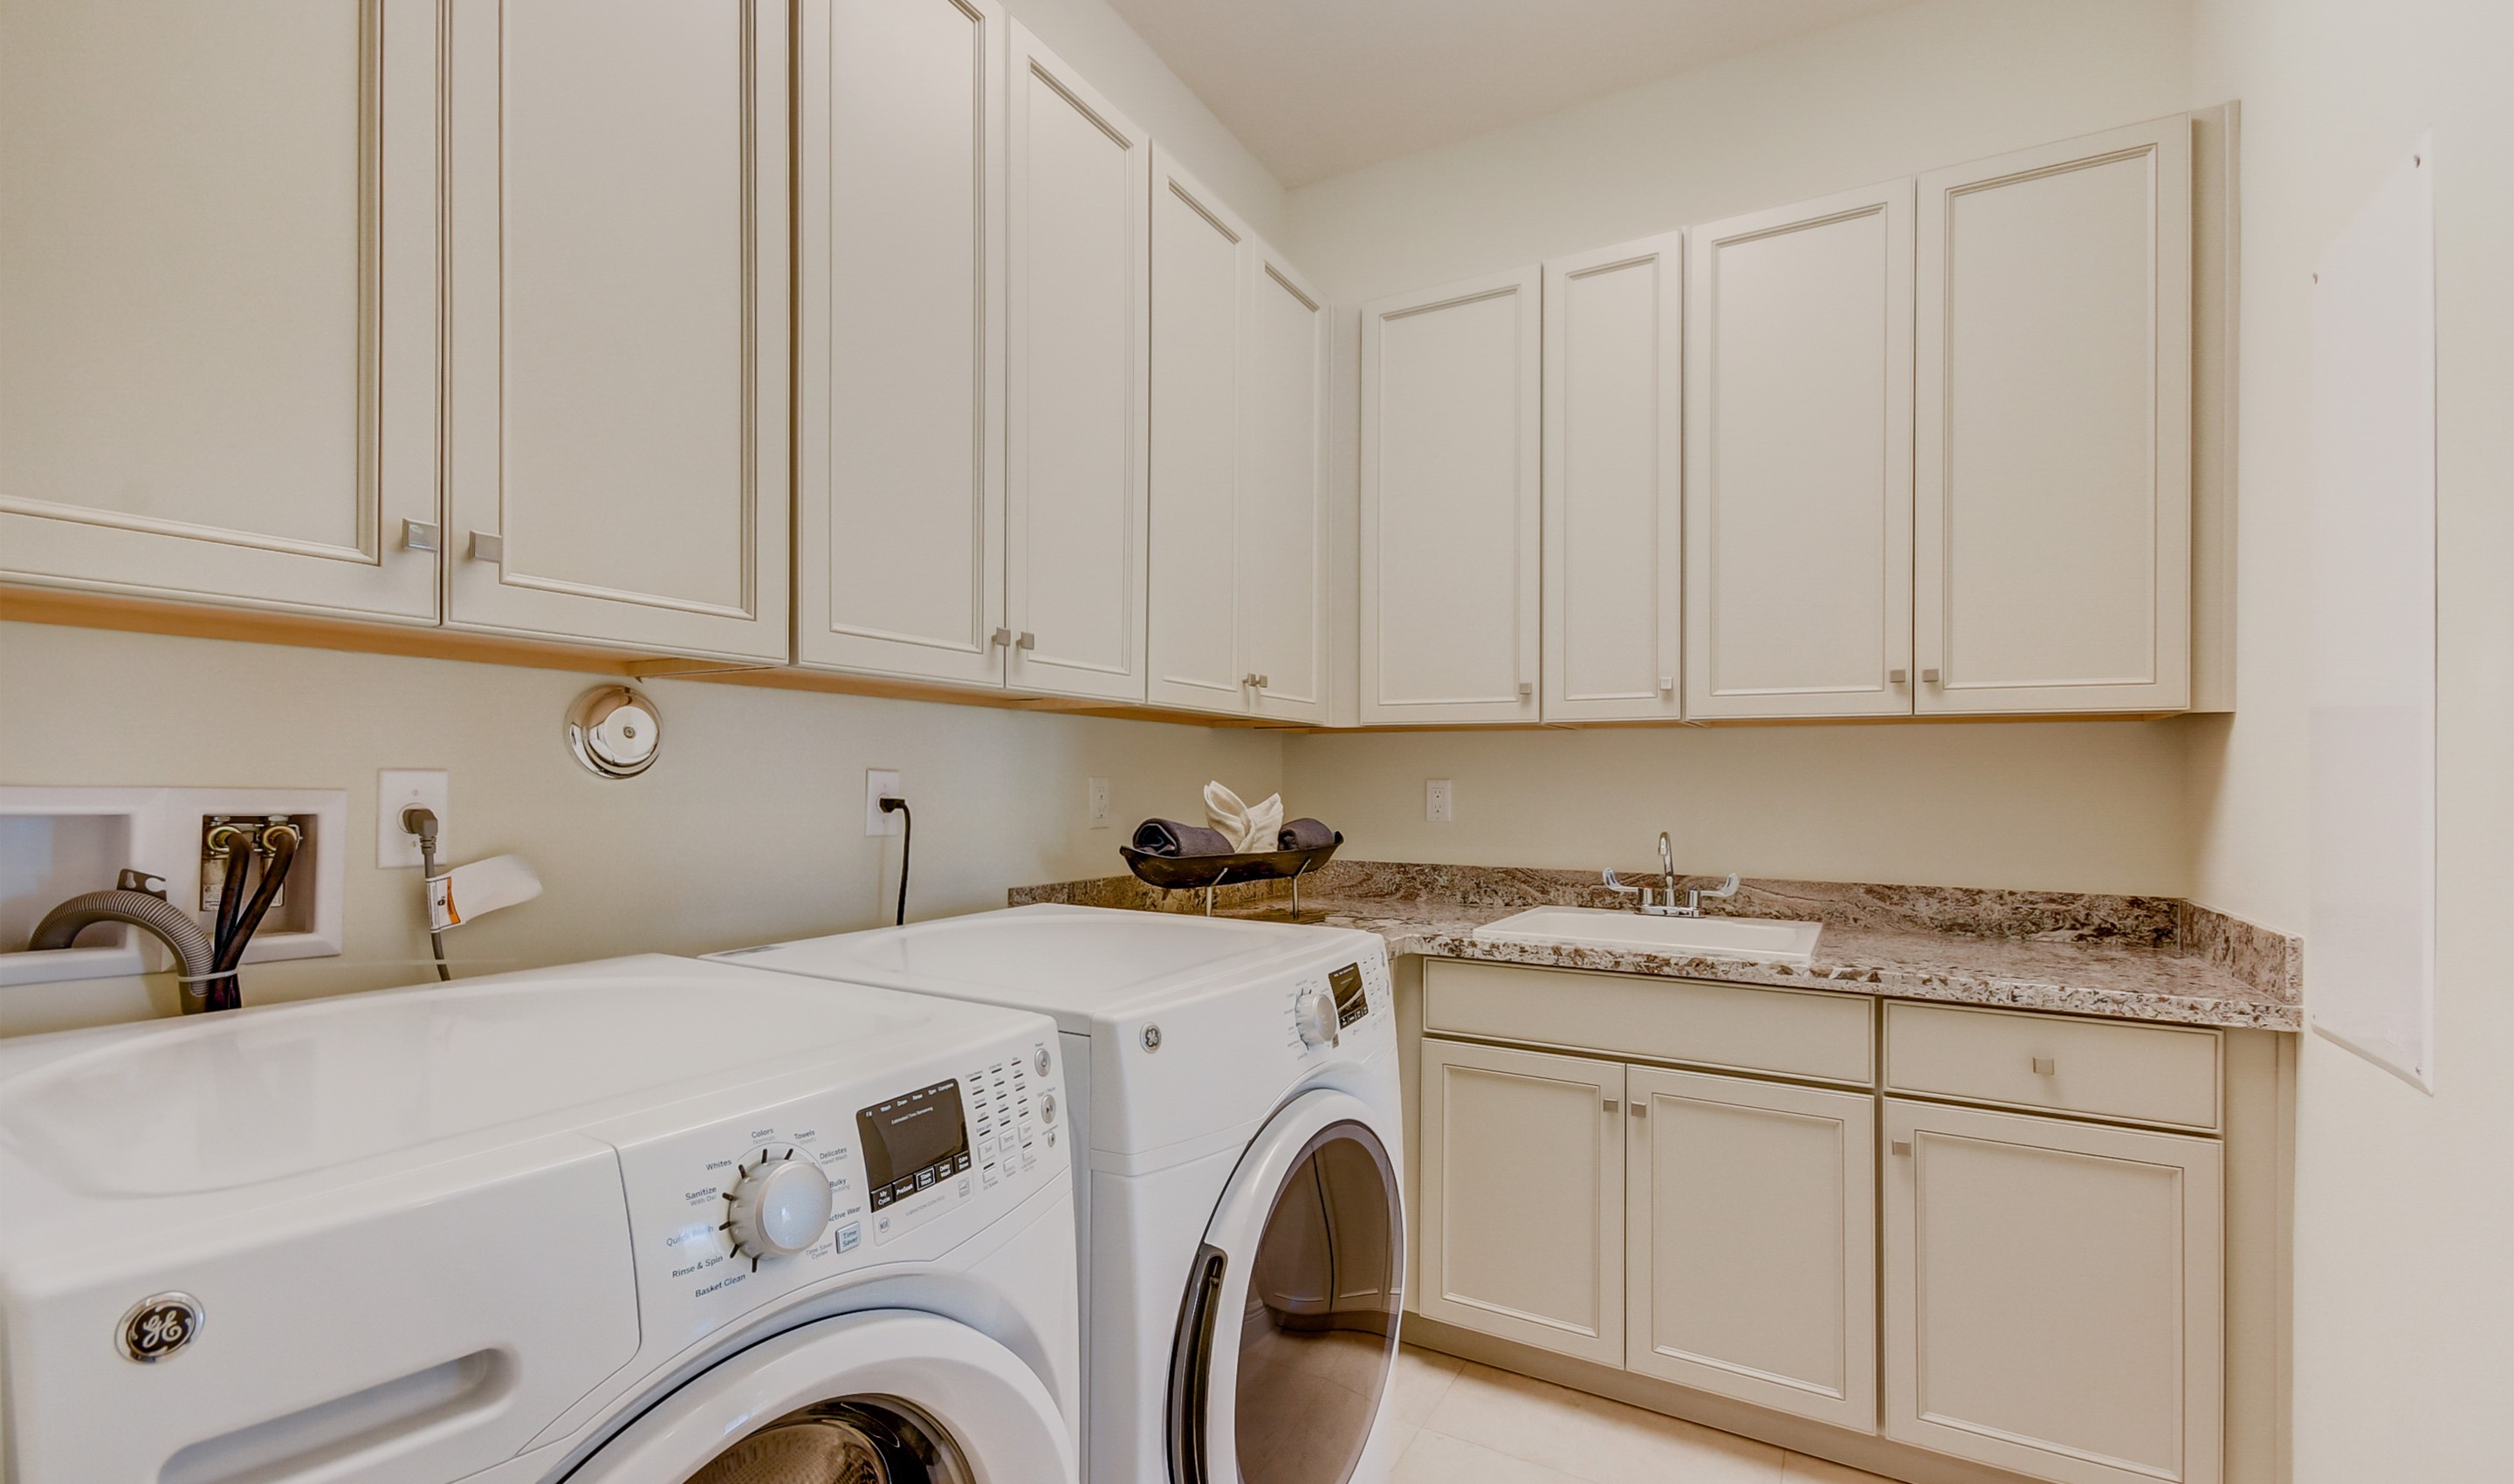 Laundry room with cabinet space